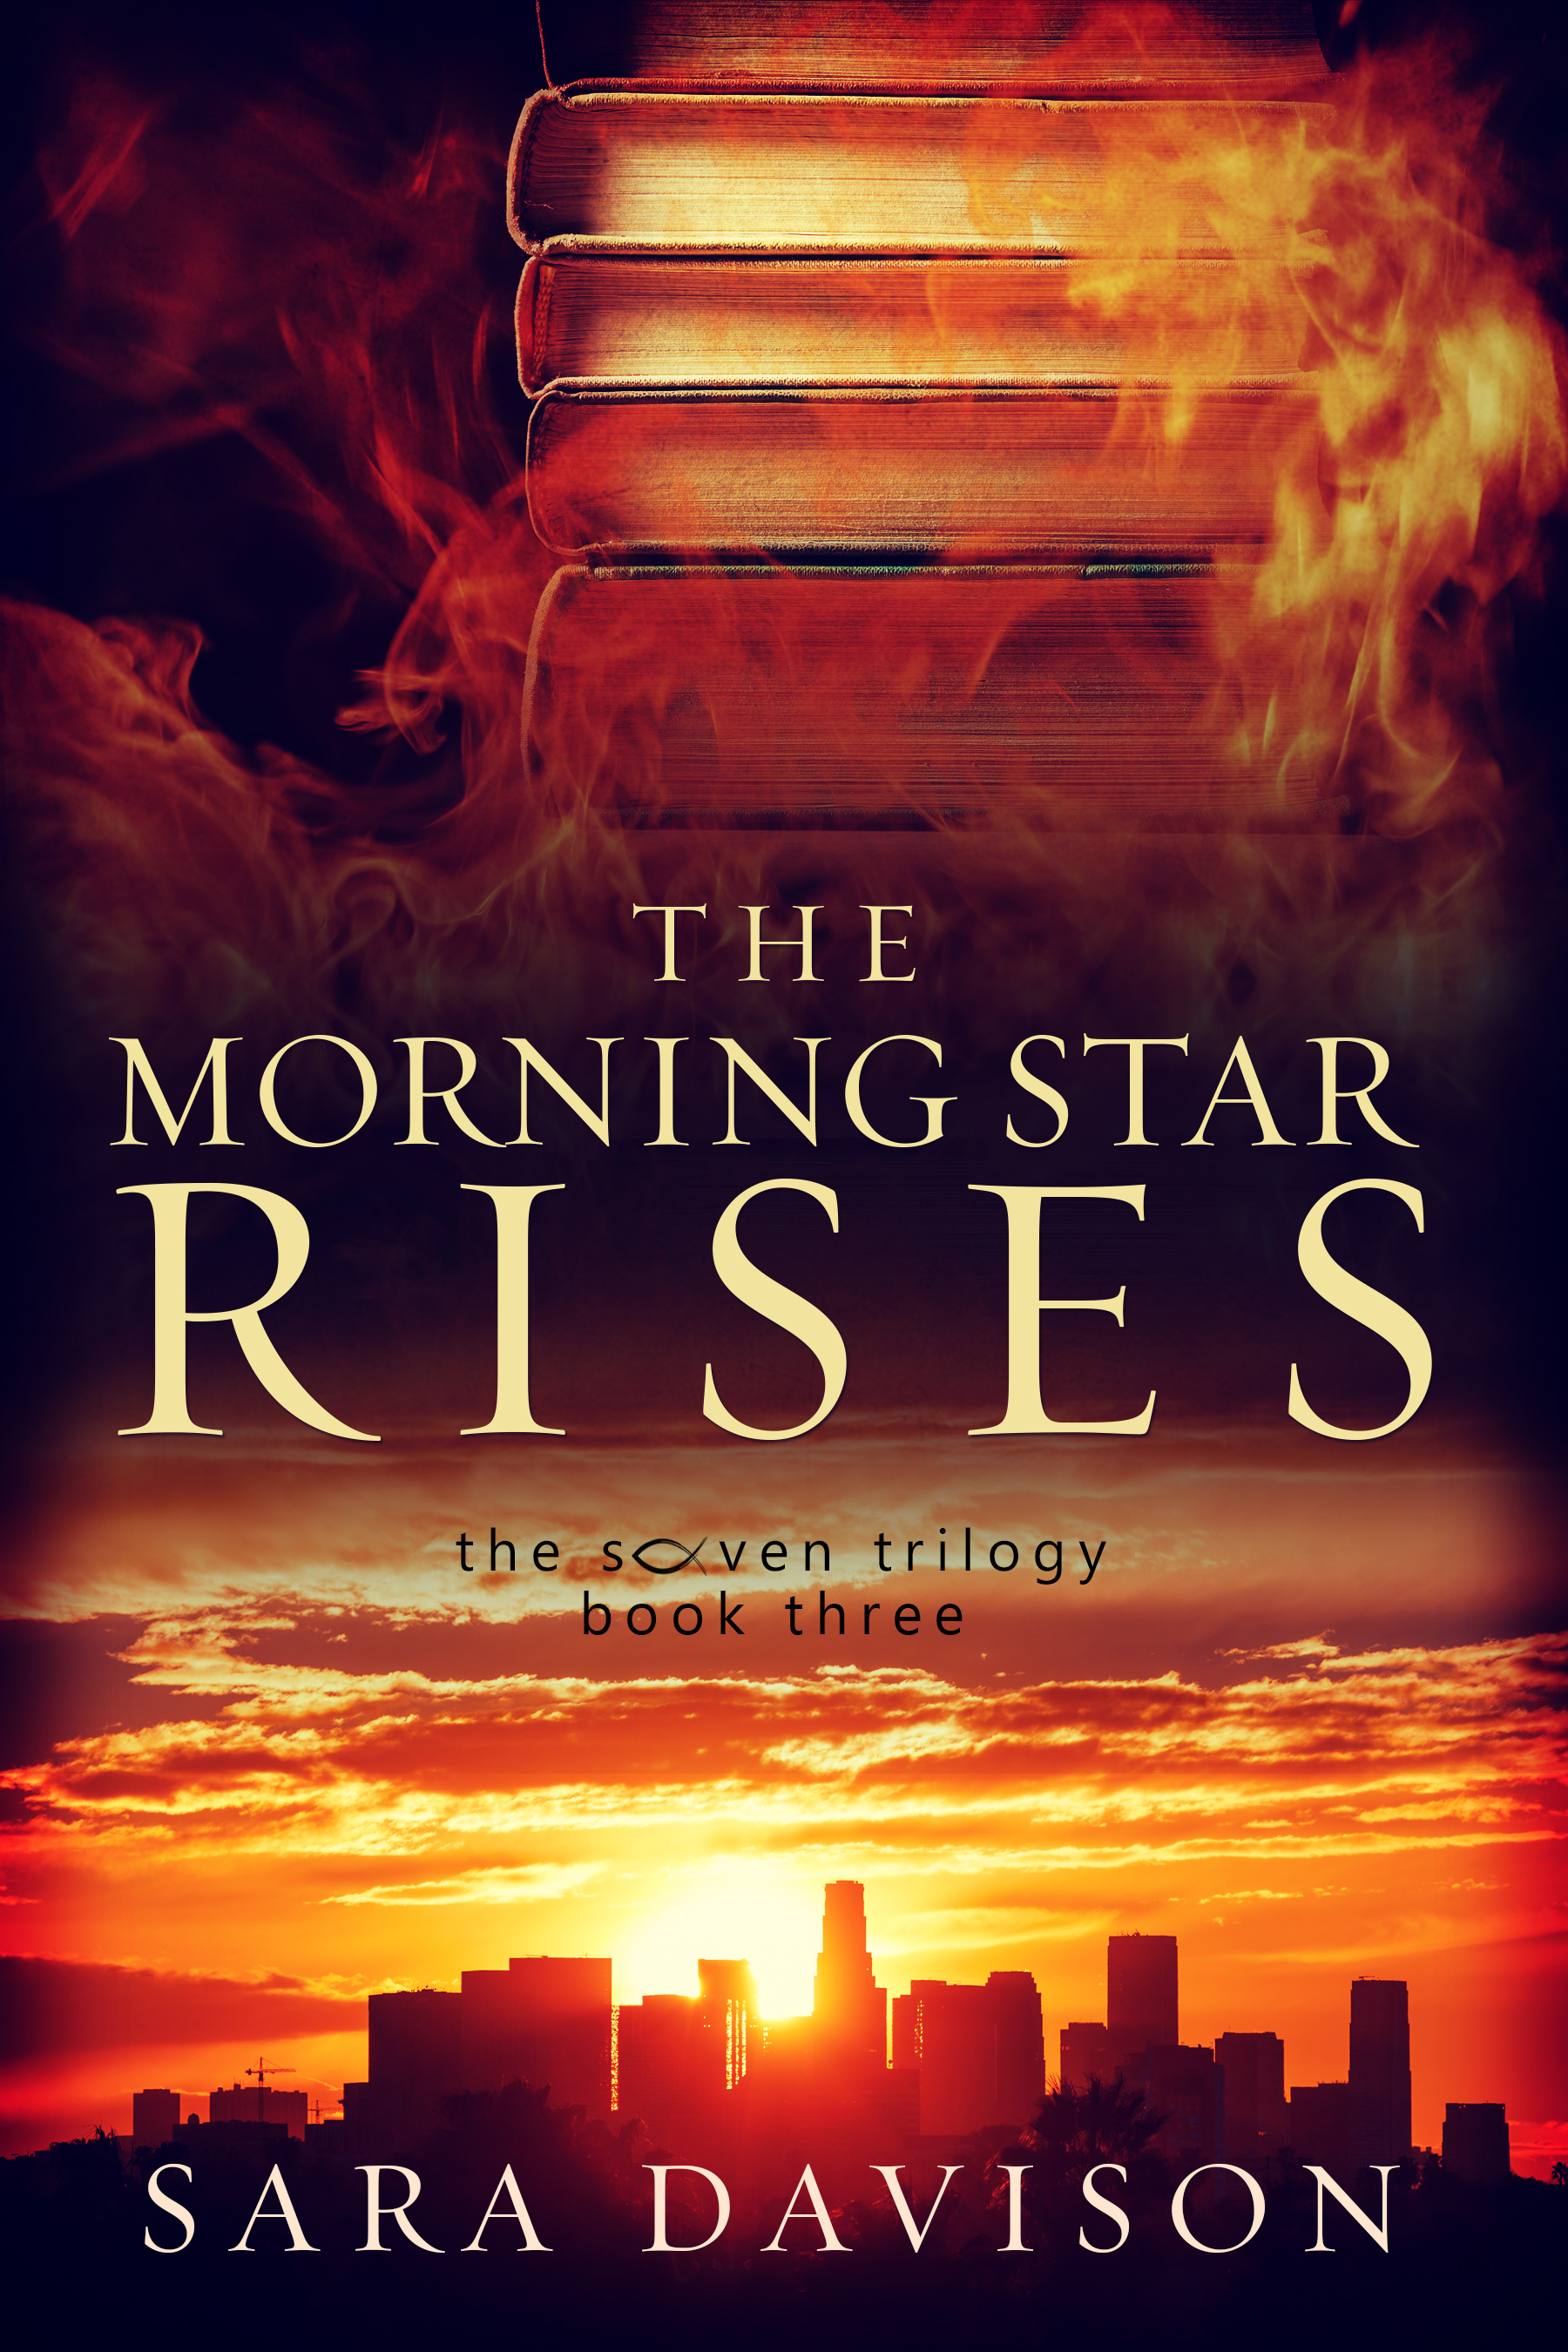 The Morning Star Rises flaming books LA